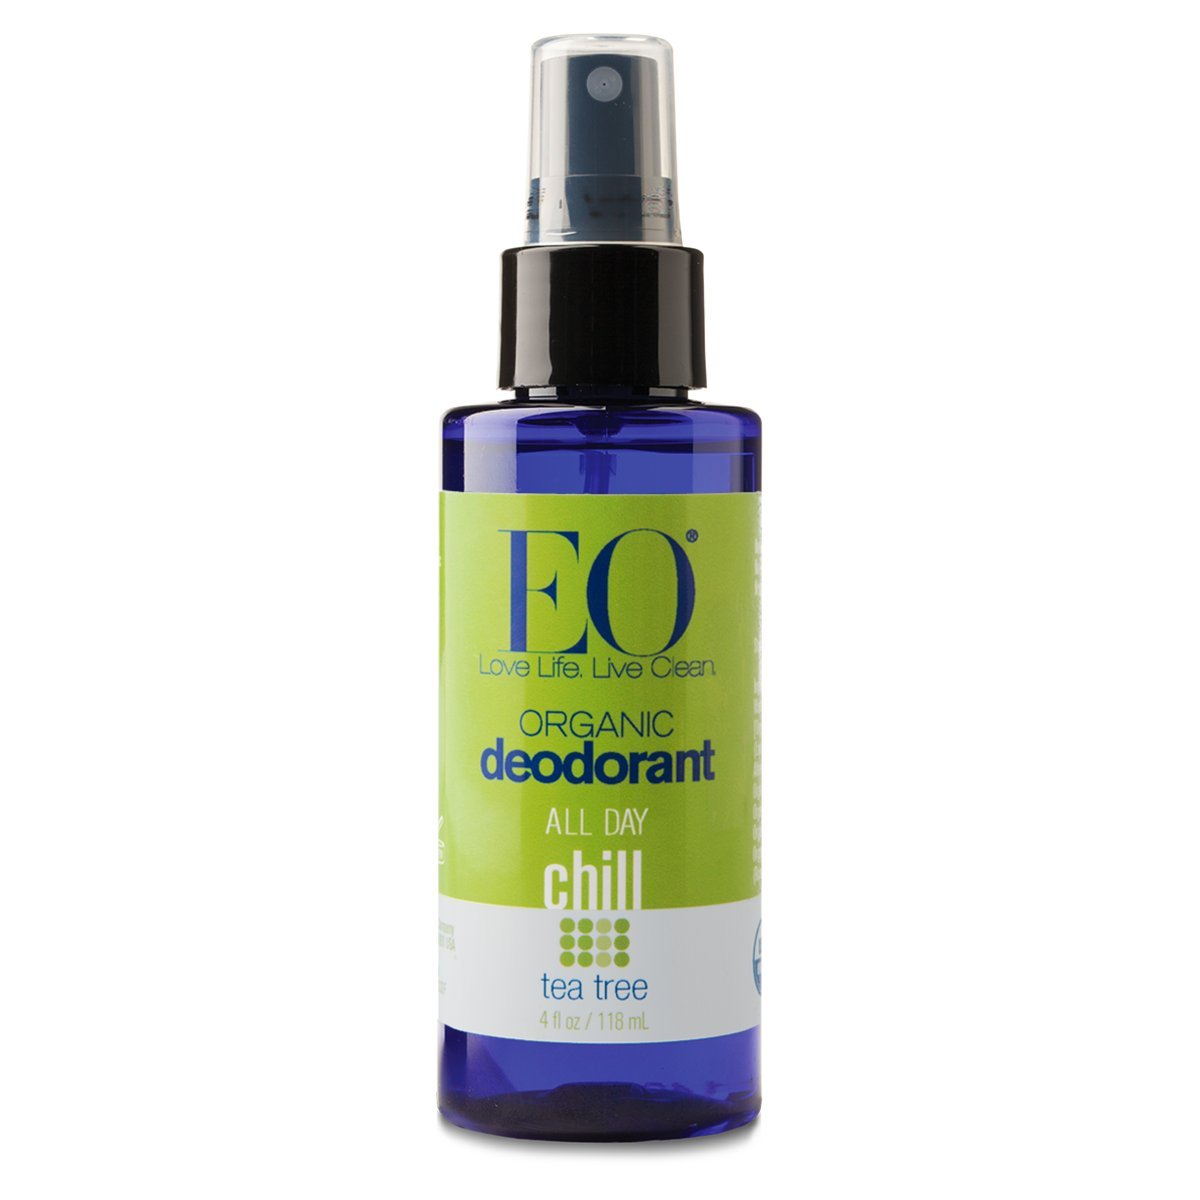 EO Organic Deodorant Spray, All Day Chill, Tea Tree, 4 Ounce (Pack of 24)